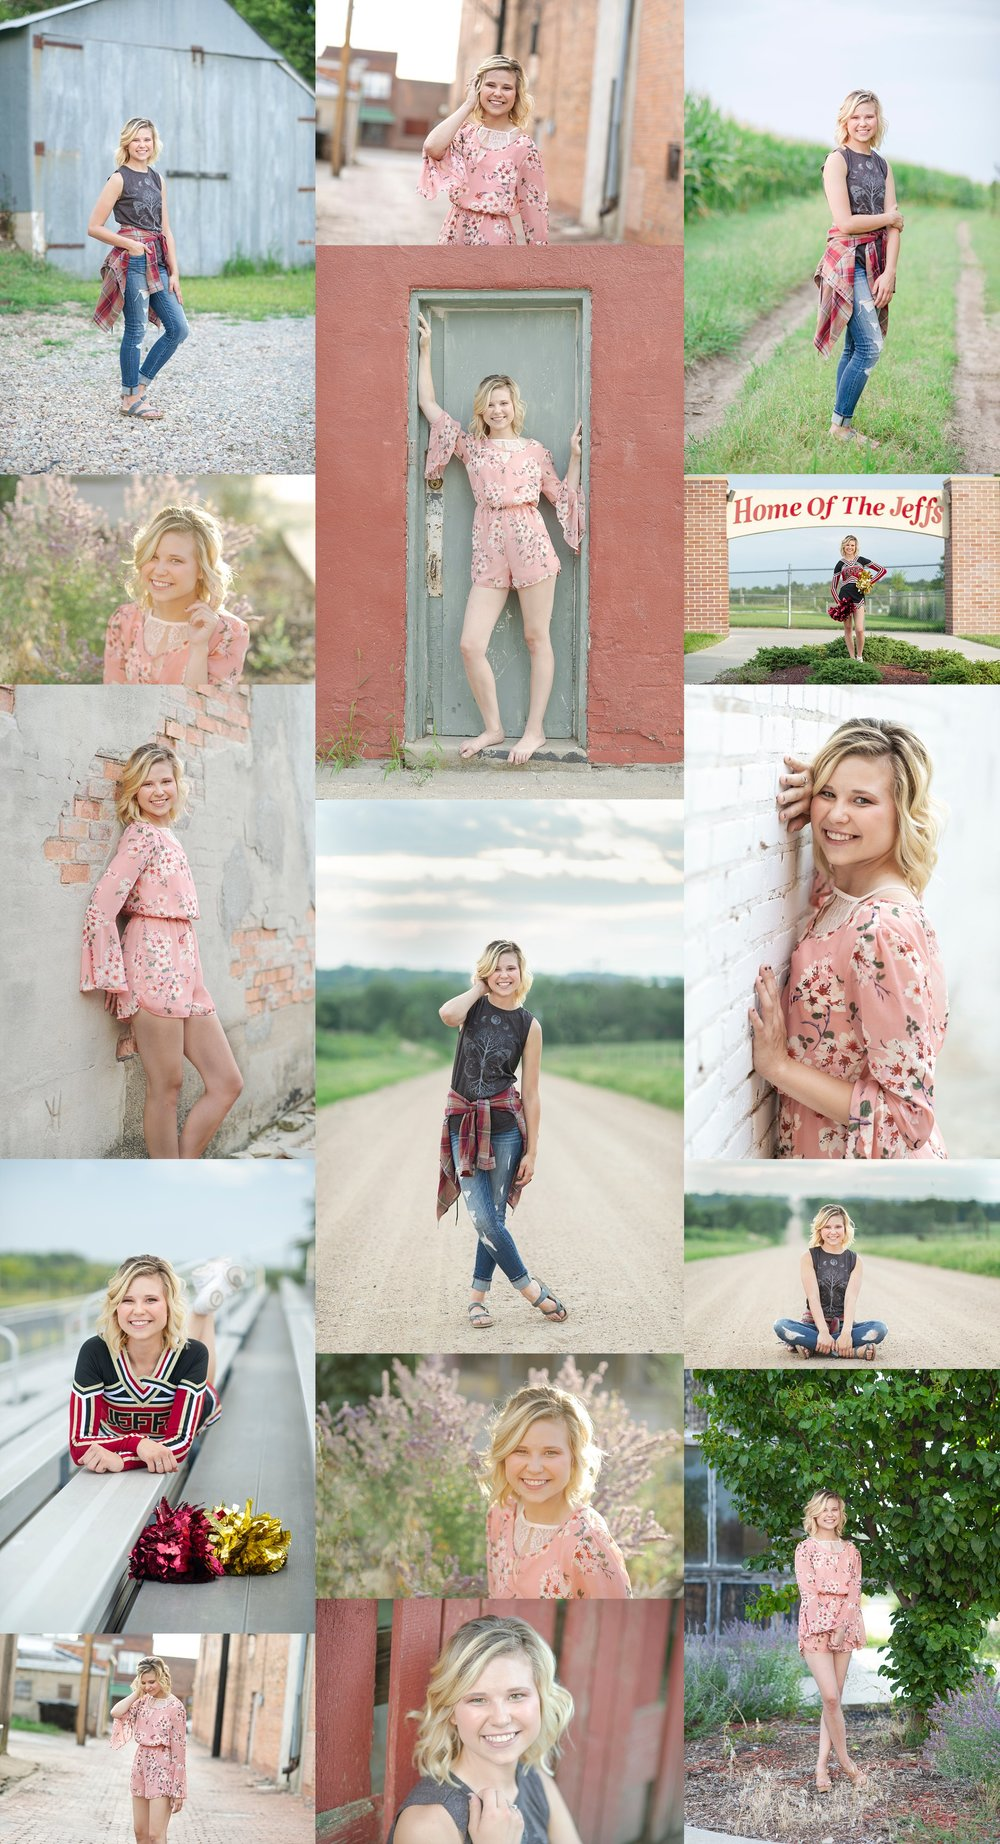 southeast-nebraska-photographer-dirt-road-photography-kelsey-homolka-nerud-farm-photos-senior-girl-portraits-high-school-barn-tractor-grass-cow-dirt-gravel-road-farm-tall-grass-fairbury-nebraska-sunset-boots-senior-portraits-photos-pictures-alley-street-brick-floral-romper-cheerleading-cheerleader-stadium-stands-white-brick